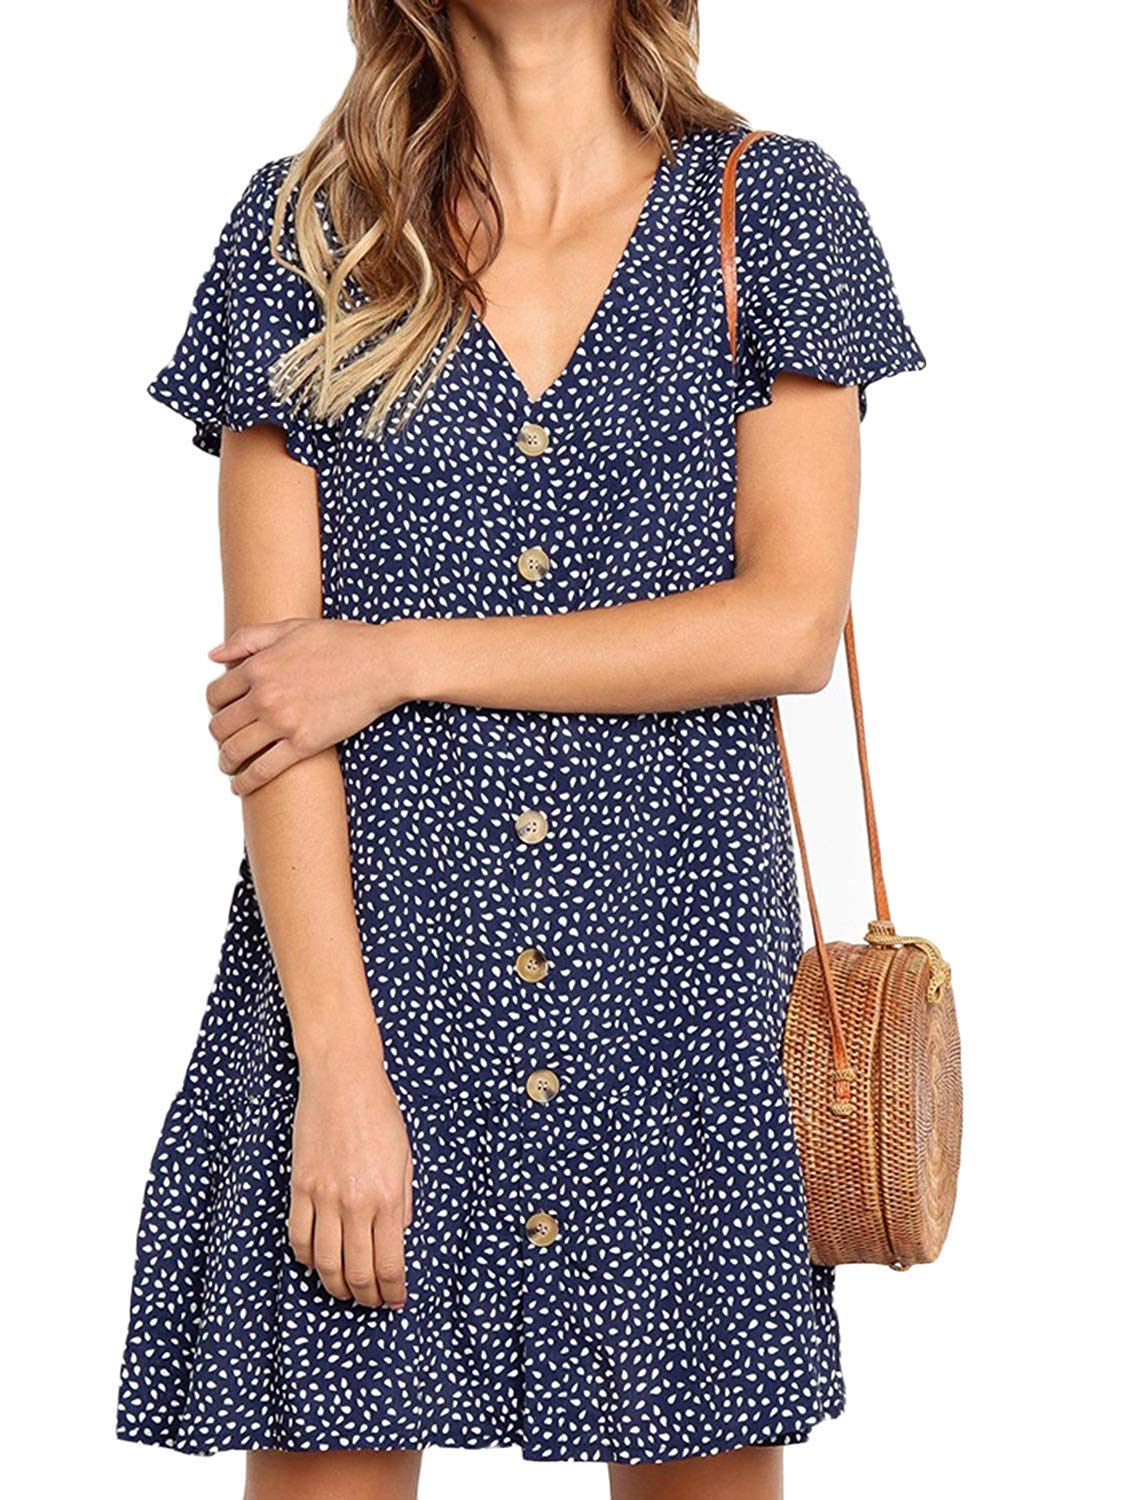 Women's Summer Button Down Polka Dot Dress Casual Ruffle Beach Sundresses Flowy Bohemian V Neck Cute Mini Tshirt Dress Blue